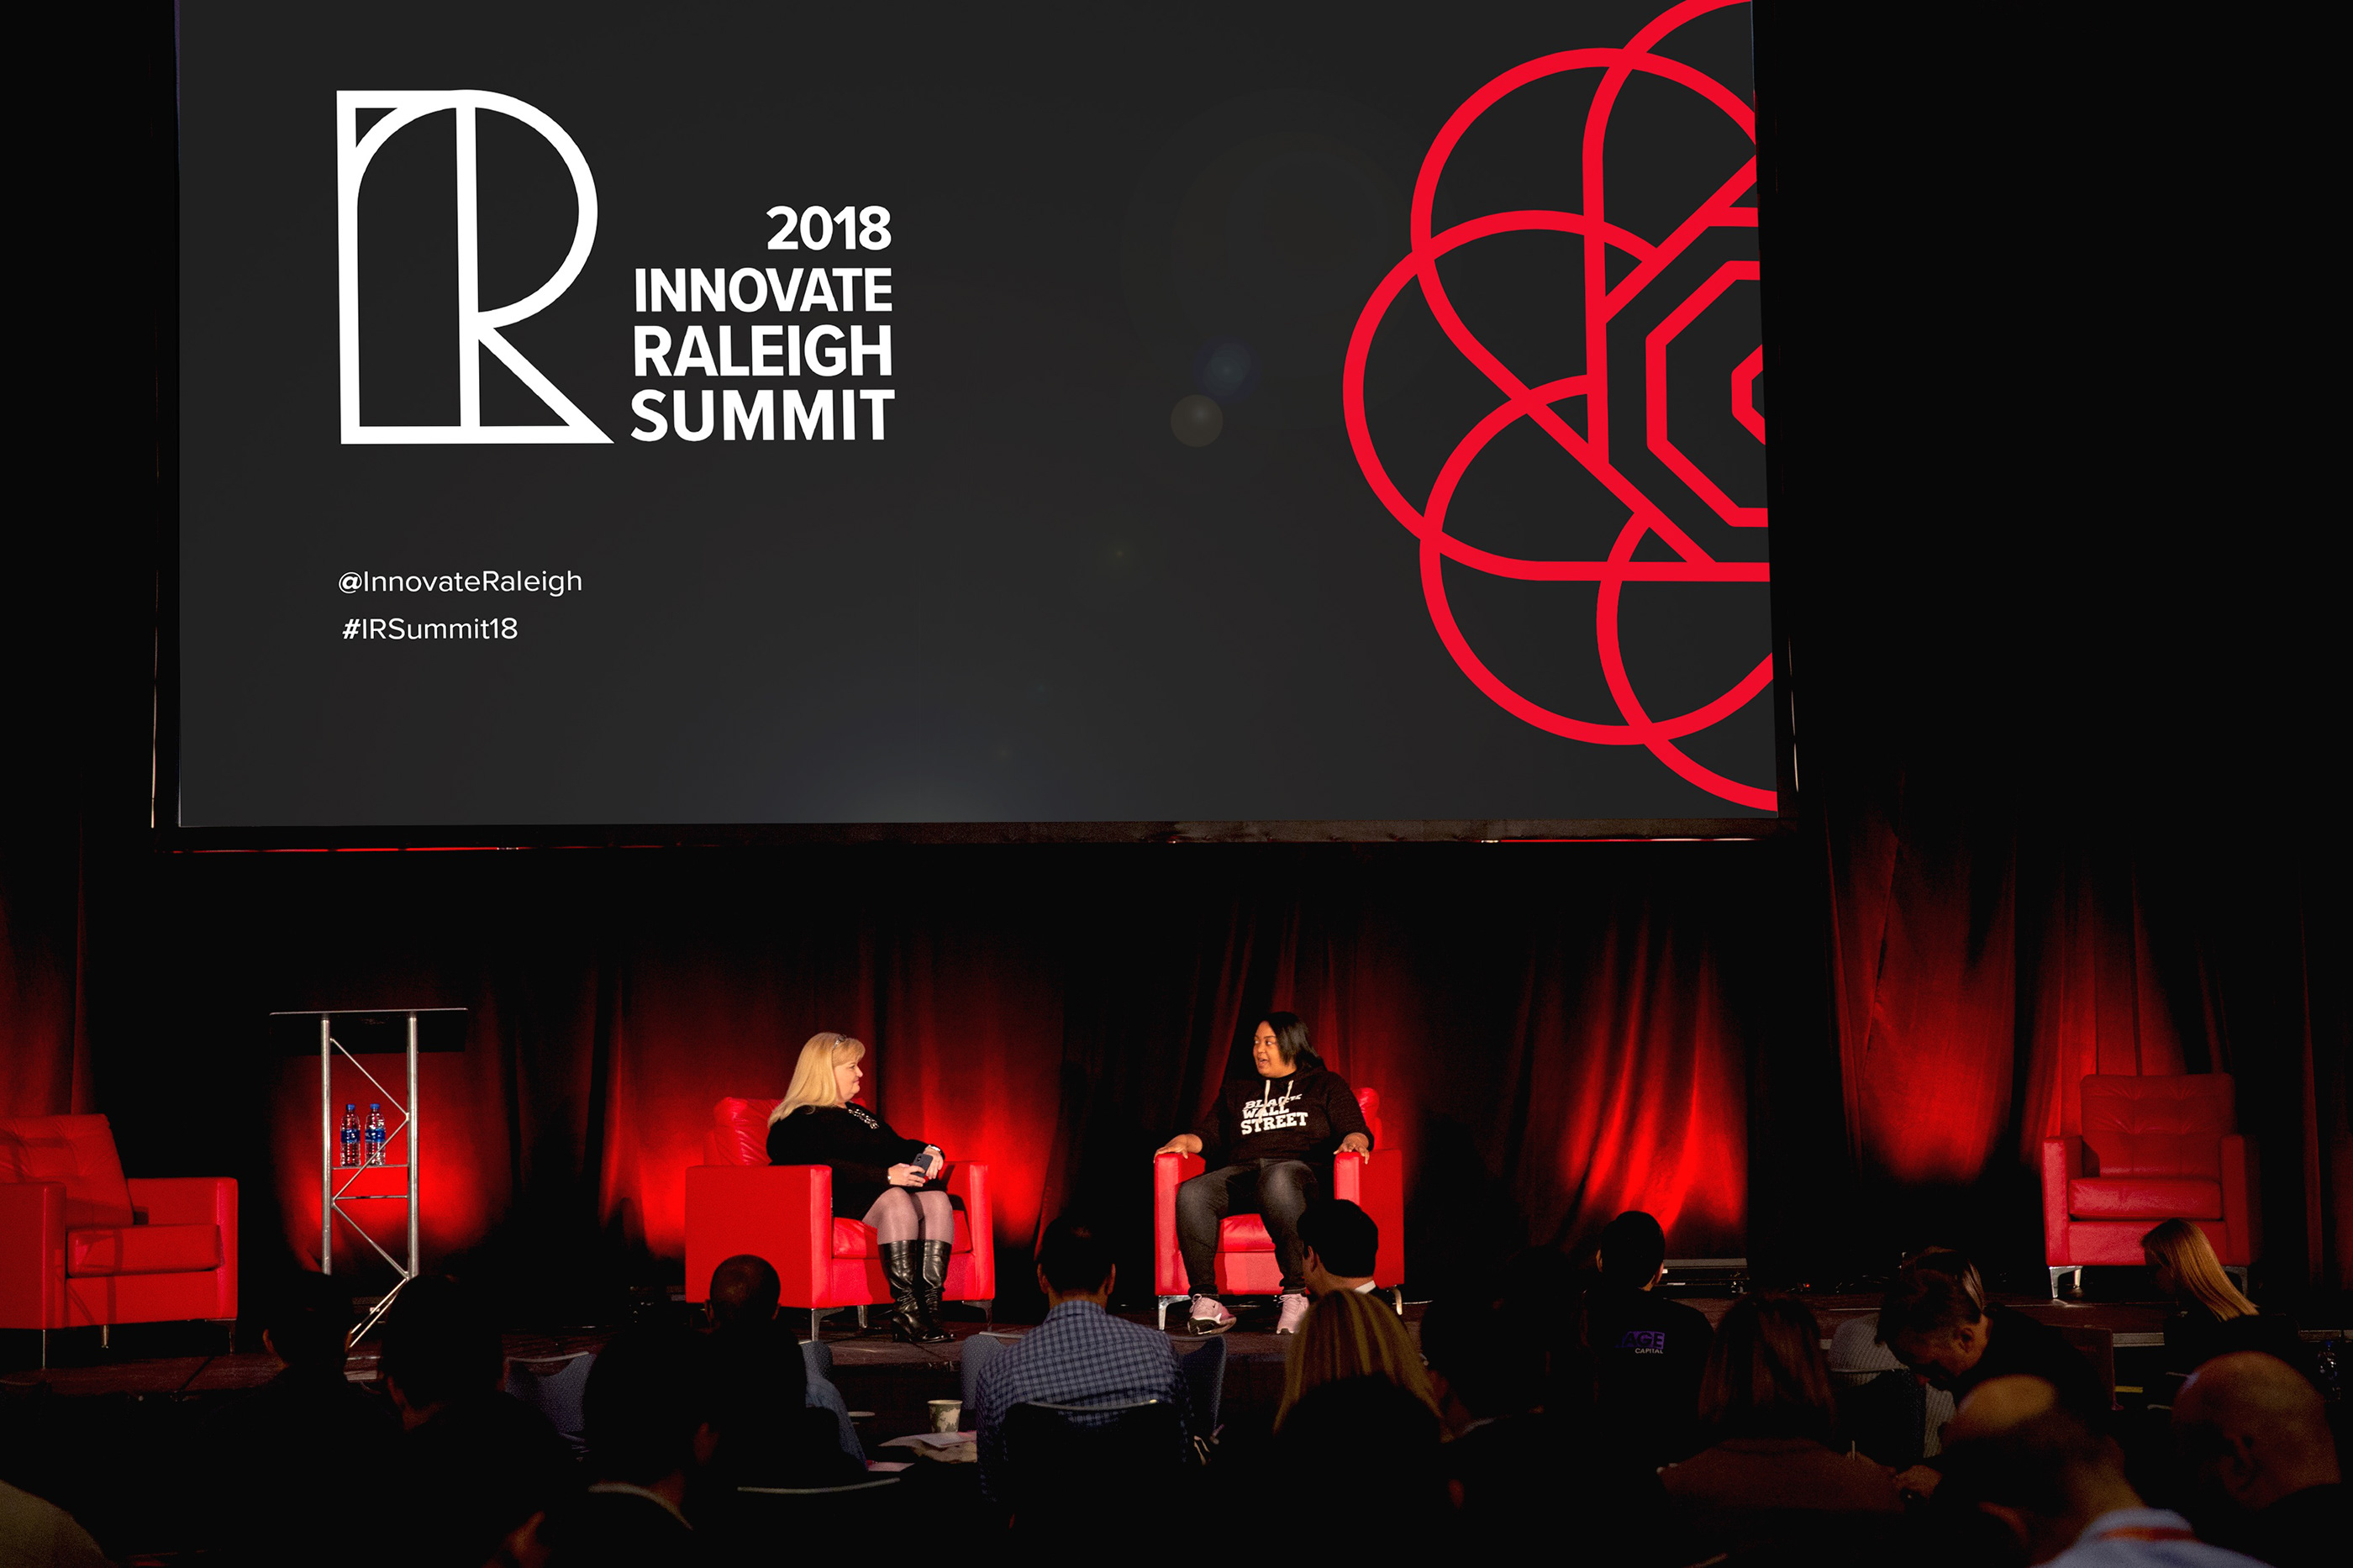 Innovate Raleigh Summit 2018